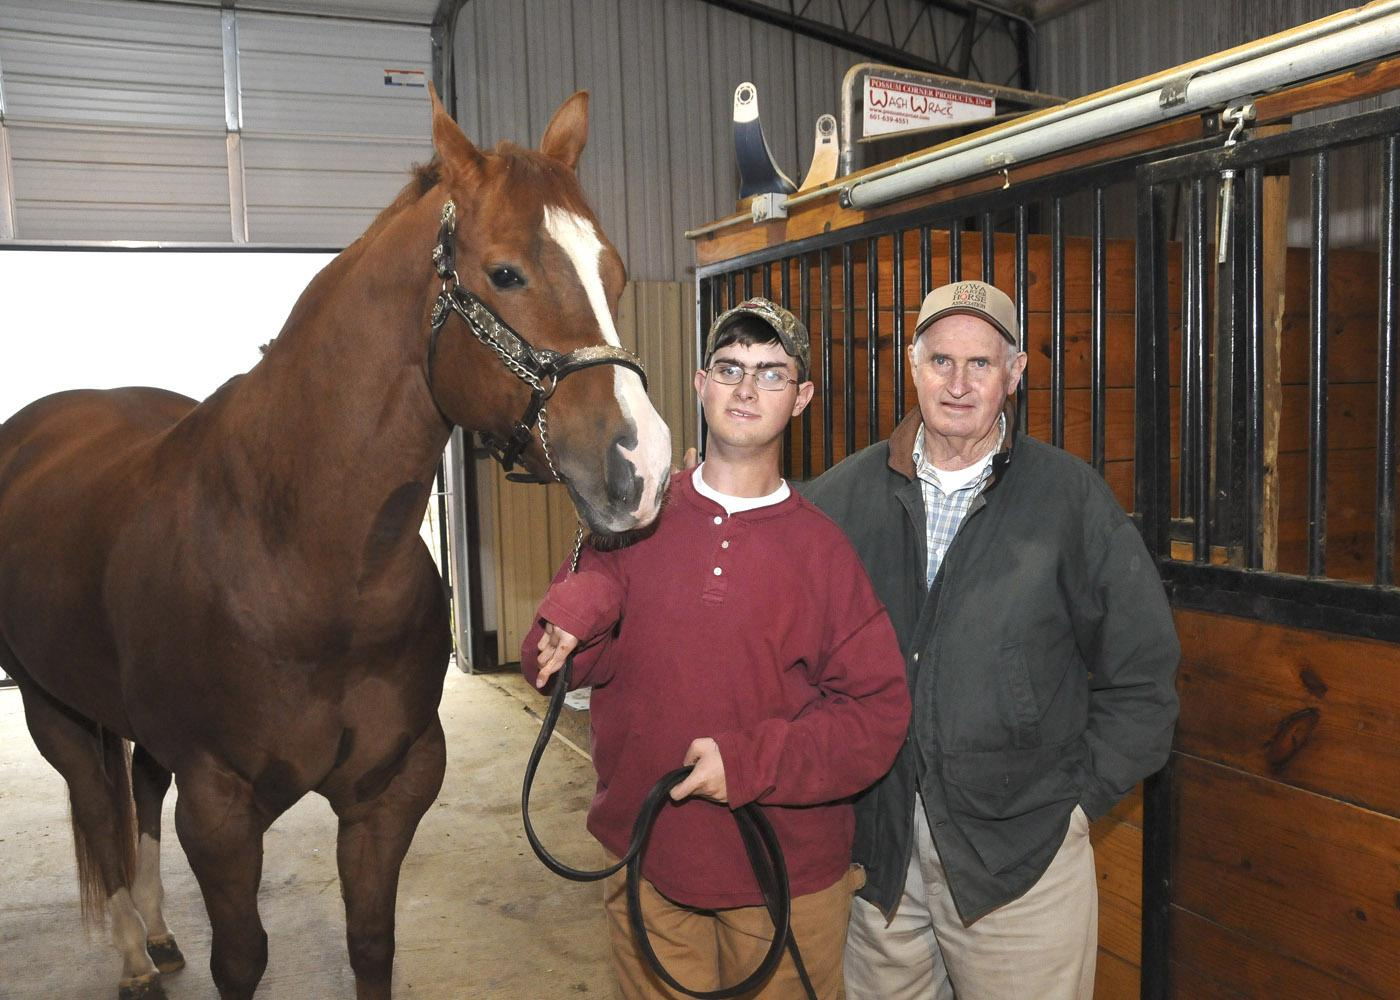 After multiple surgeries and extensive physical therapy for cerebral palsy, Jamie Mangum, pictured with his horse Bubba and grandfather James Roy Hawkins, shows halter horses without assistance. (Photo by Scott Corey)